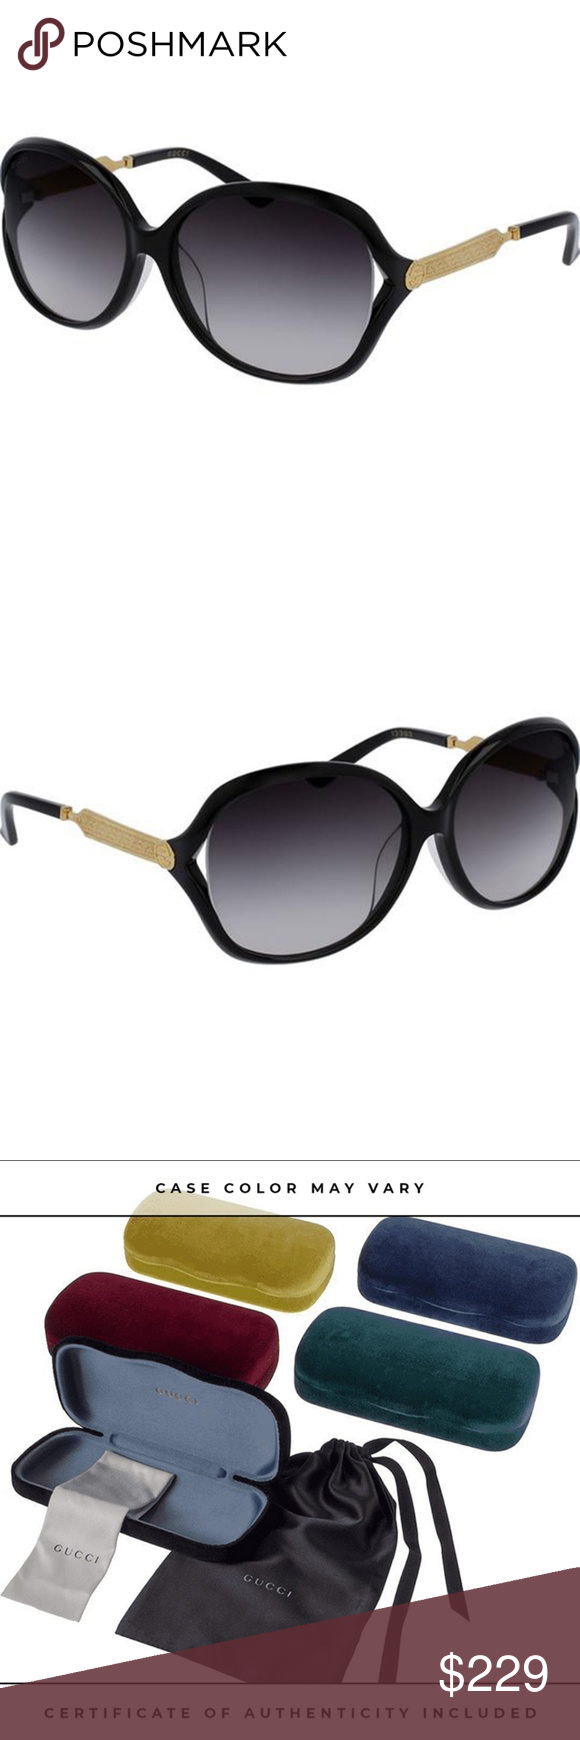 c3109877fe Gucci Sunglasses Black Gold w Grey Gradient Lens Buy with confidence from  an established dealer